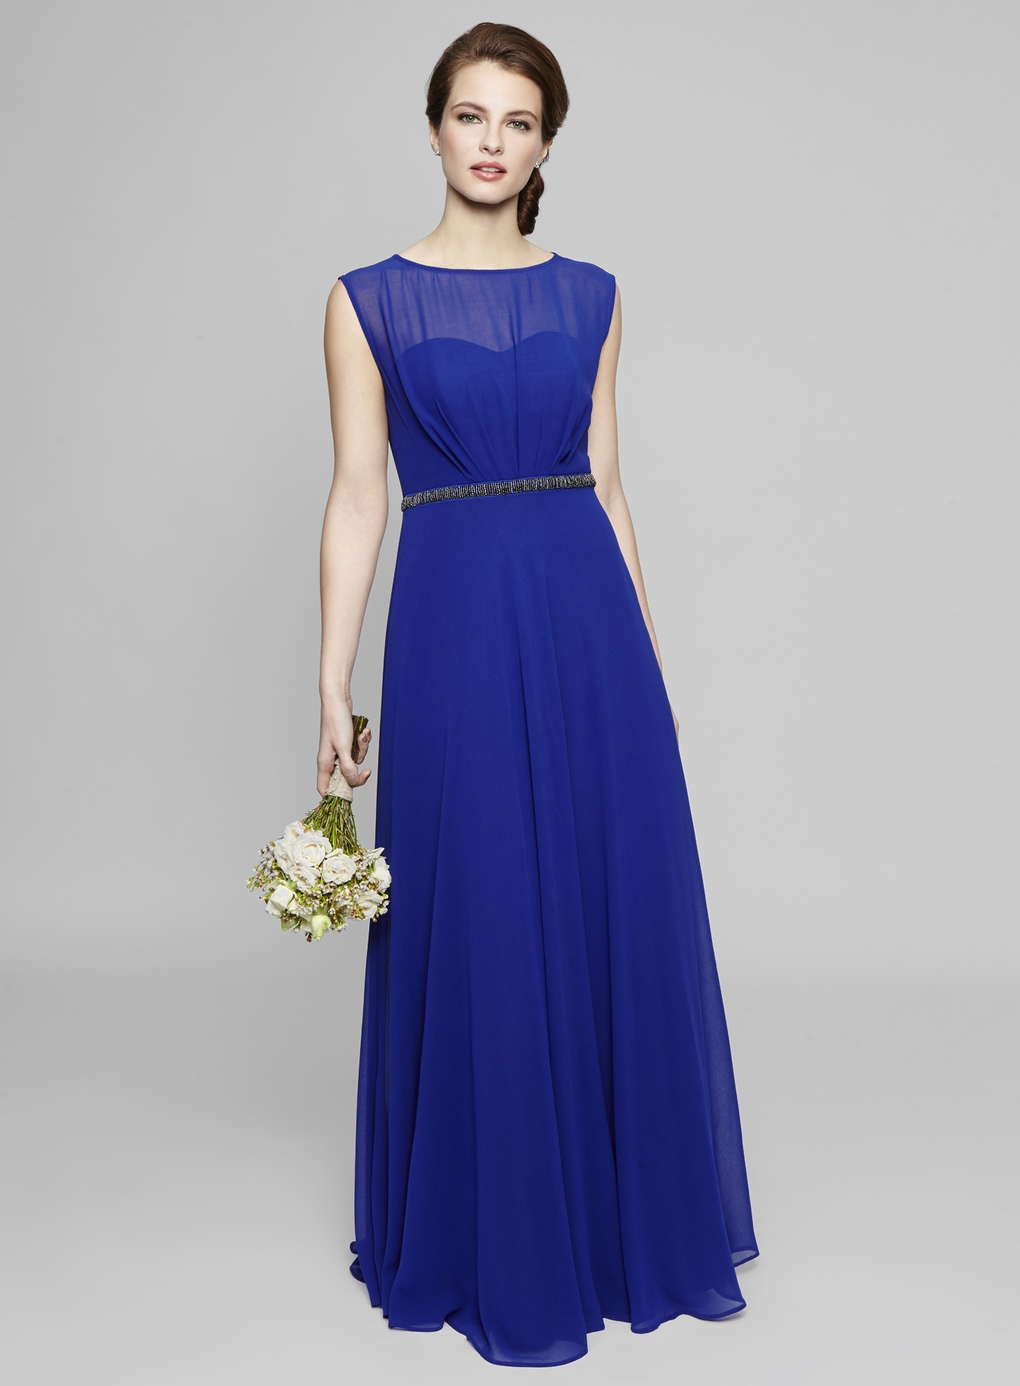 Bateau Neck Cap Sleeved Long Royal Blue Chiffon Bridesmaid Dress ... 500725b2f3f5